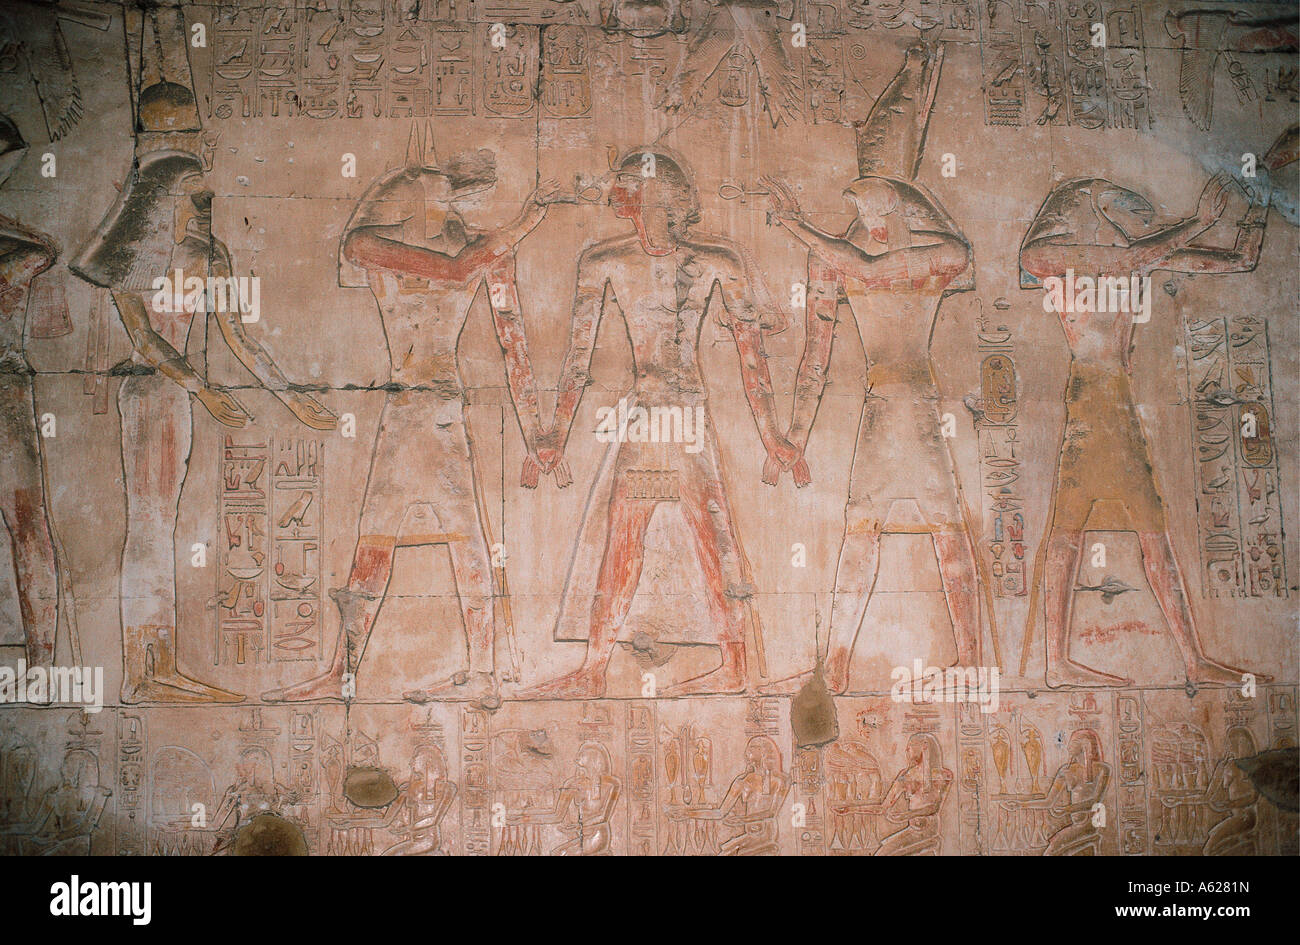 Details of reliefs inside the Temple of Abydos in Egypt - Stock Image